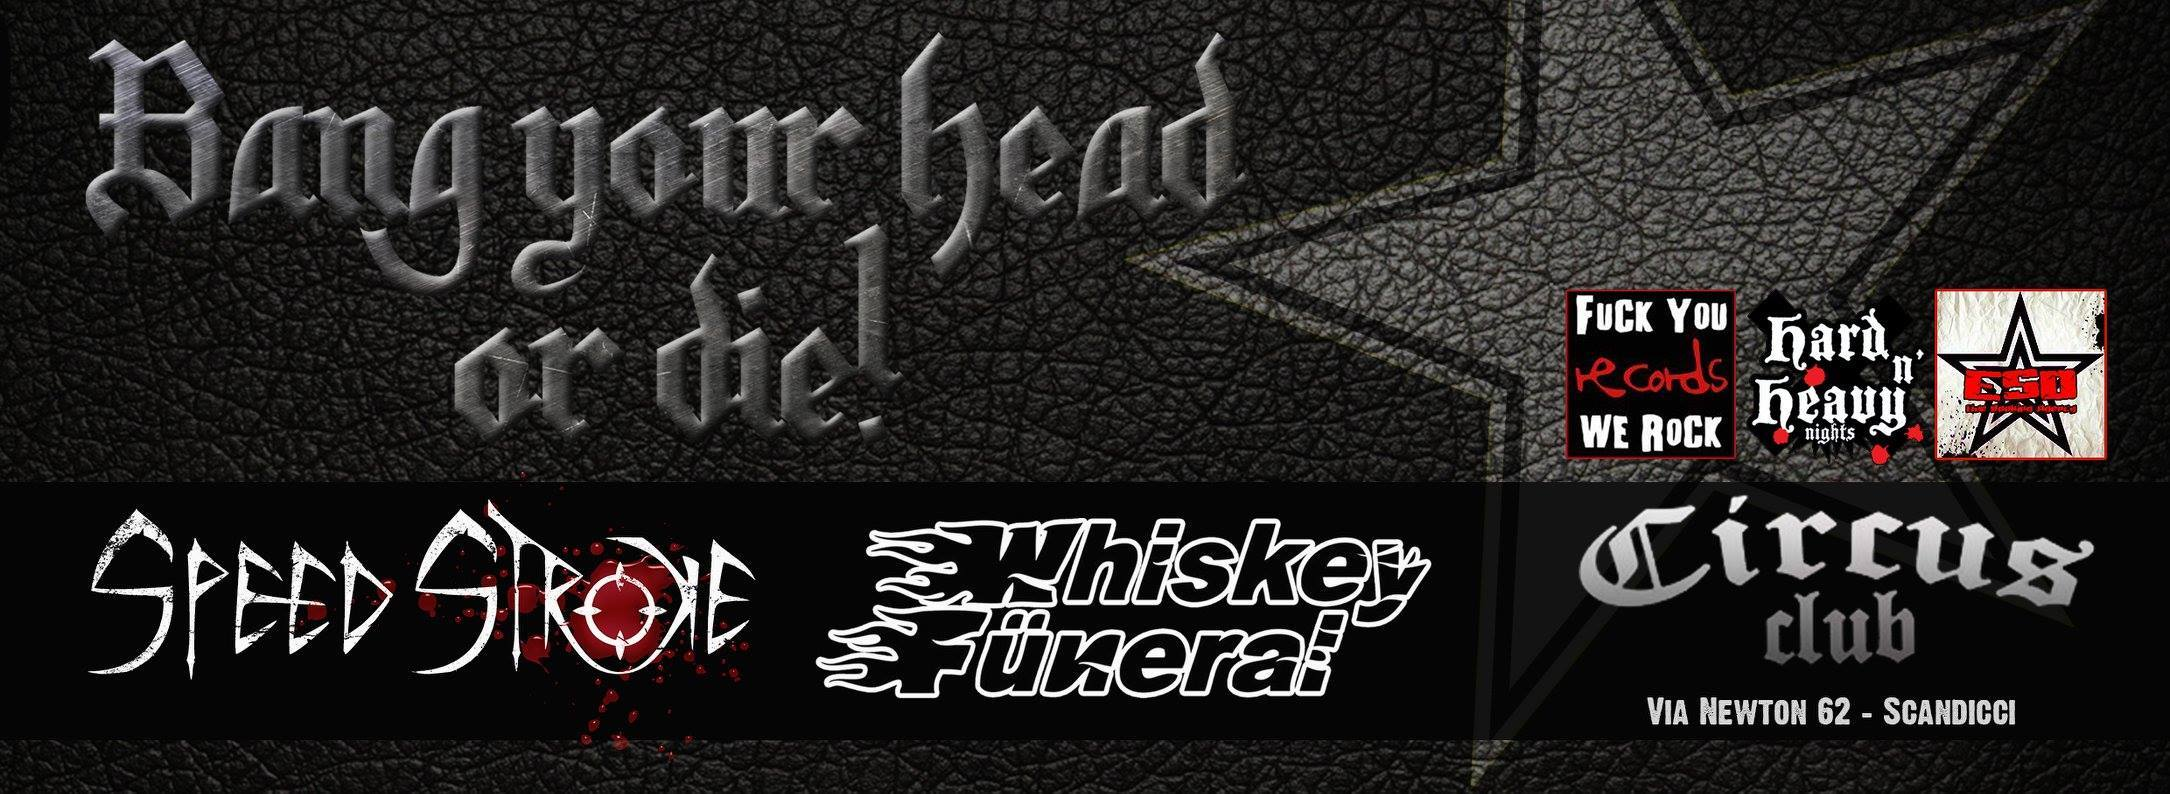 Bang Your Head Or Die Night con Speed Stroke e Whiskey Funeral